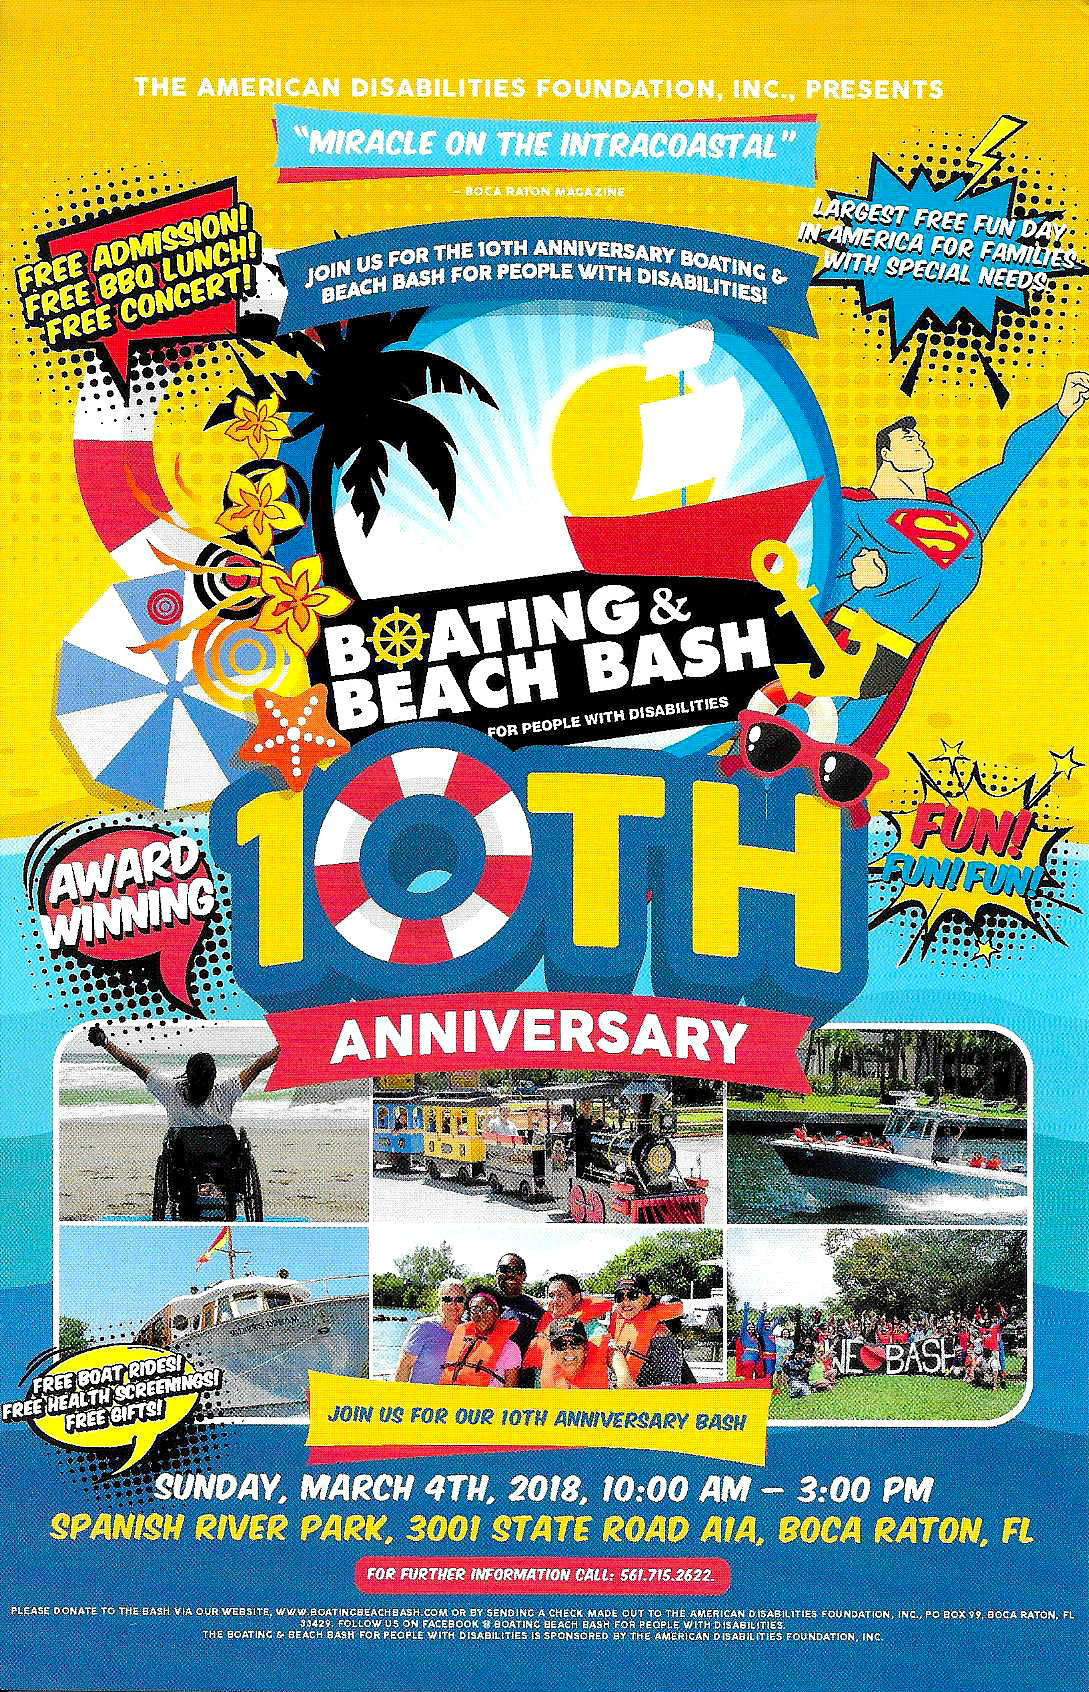 10th Anniversary Boat/Beach Bash